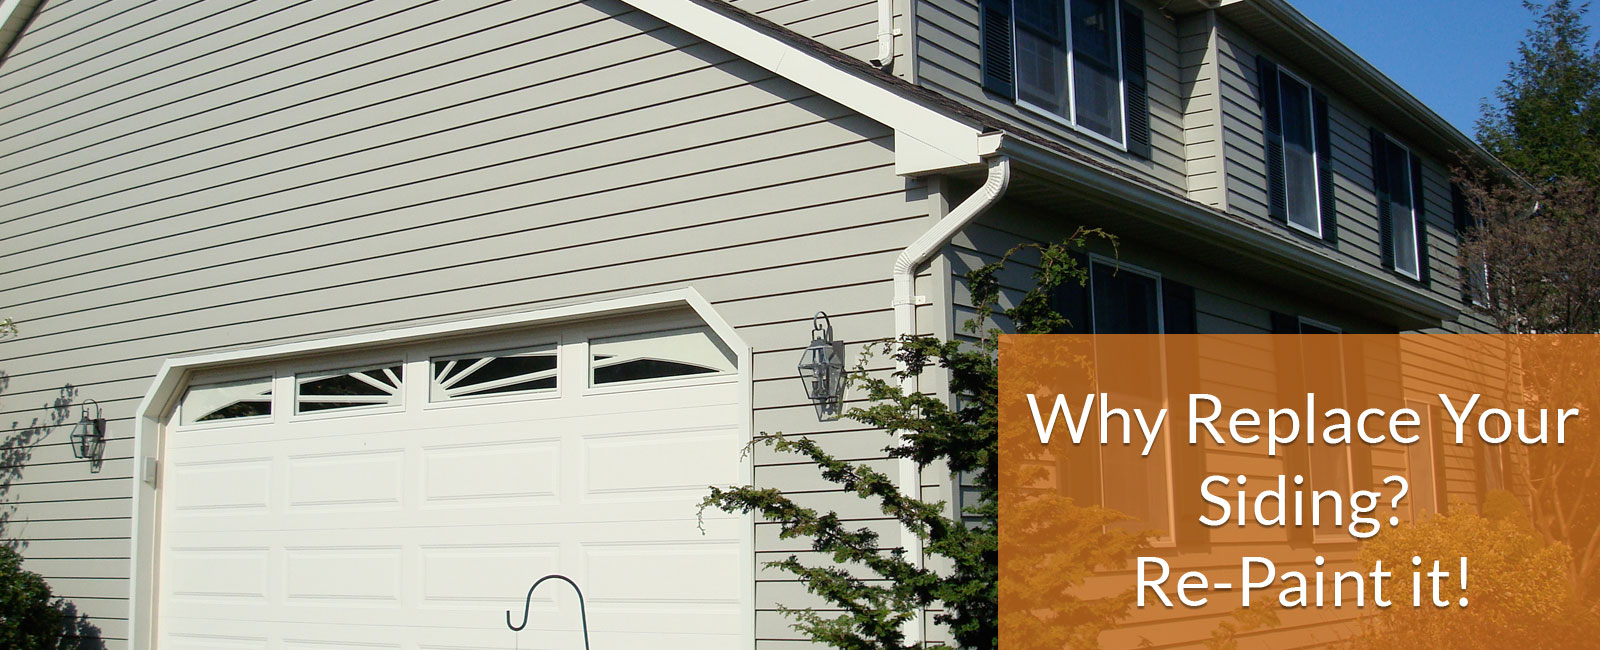 Siding Re-Painting Services in Emmaus PA